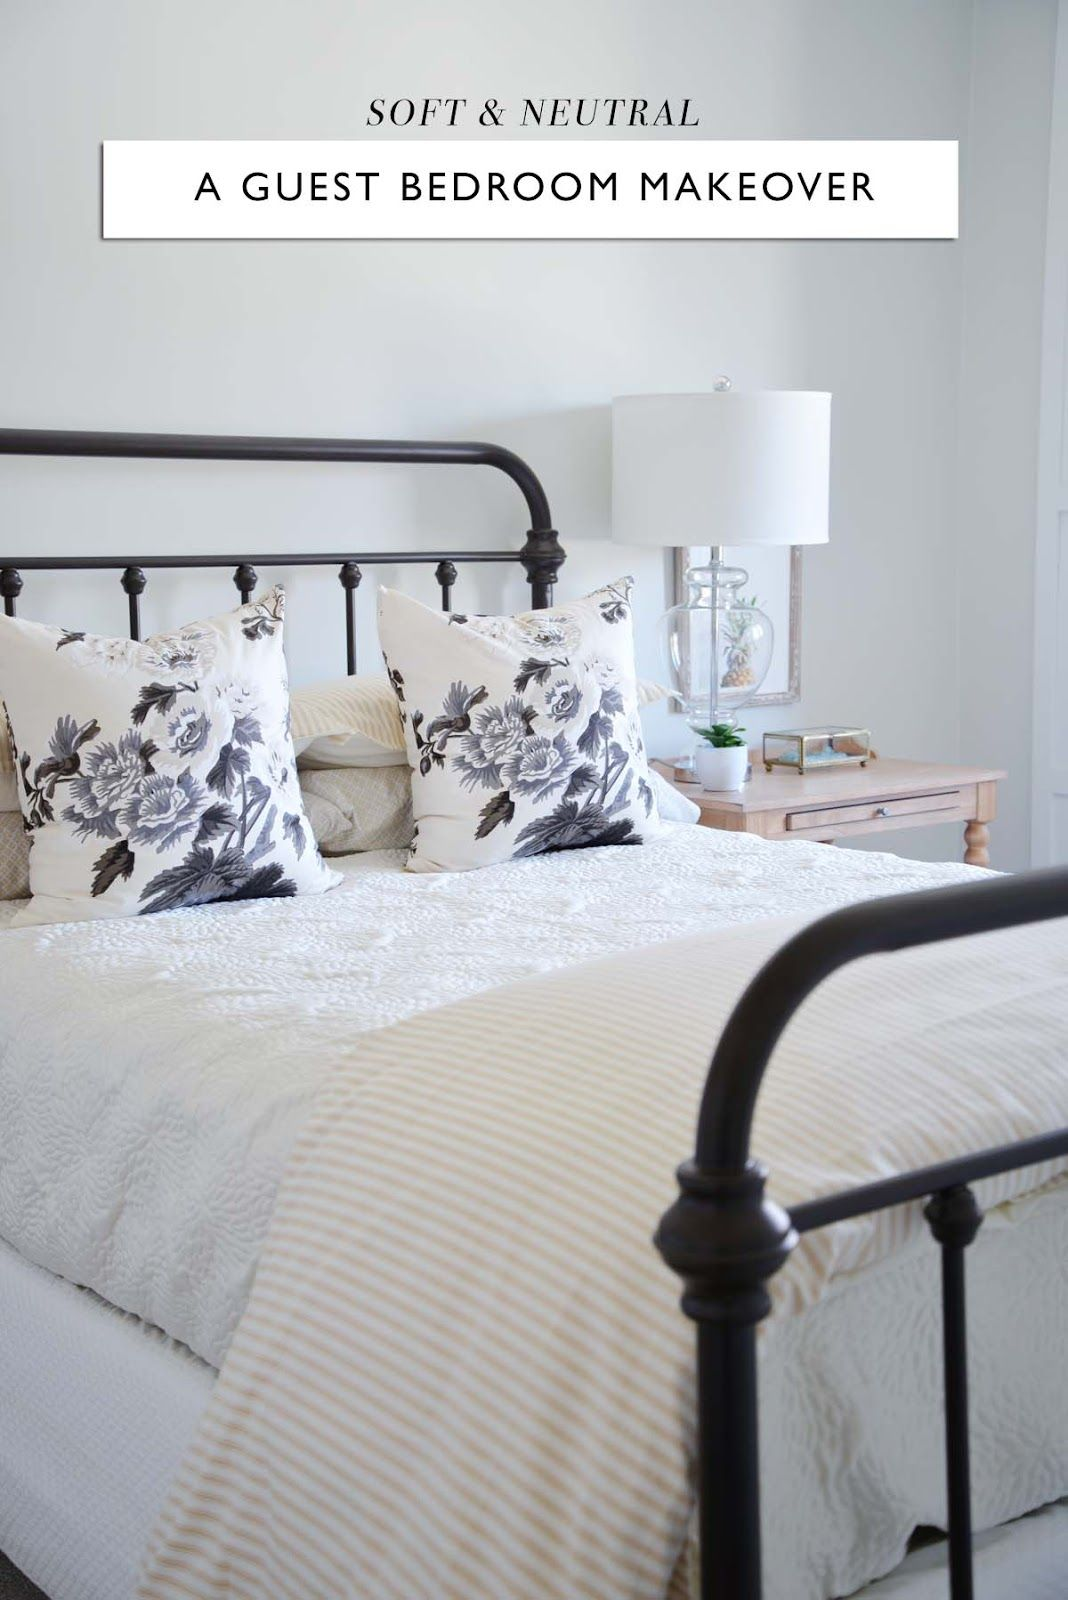 Before After A Soft And Neutral Guest Bedroom Rambling Renovators Neutral Guest Bedroom Bedroom Makeover Before And After Guest Bedroom Neutral spare bedroom ideas